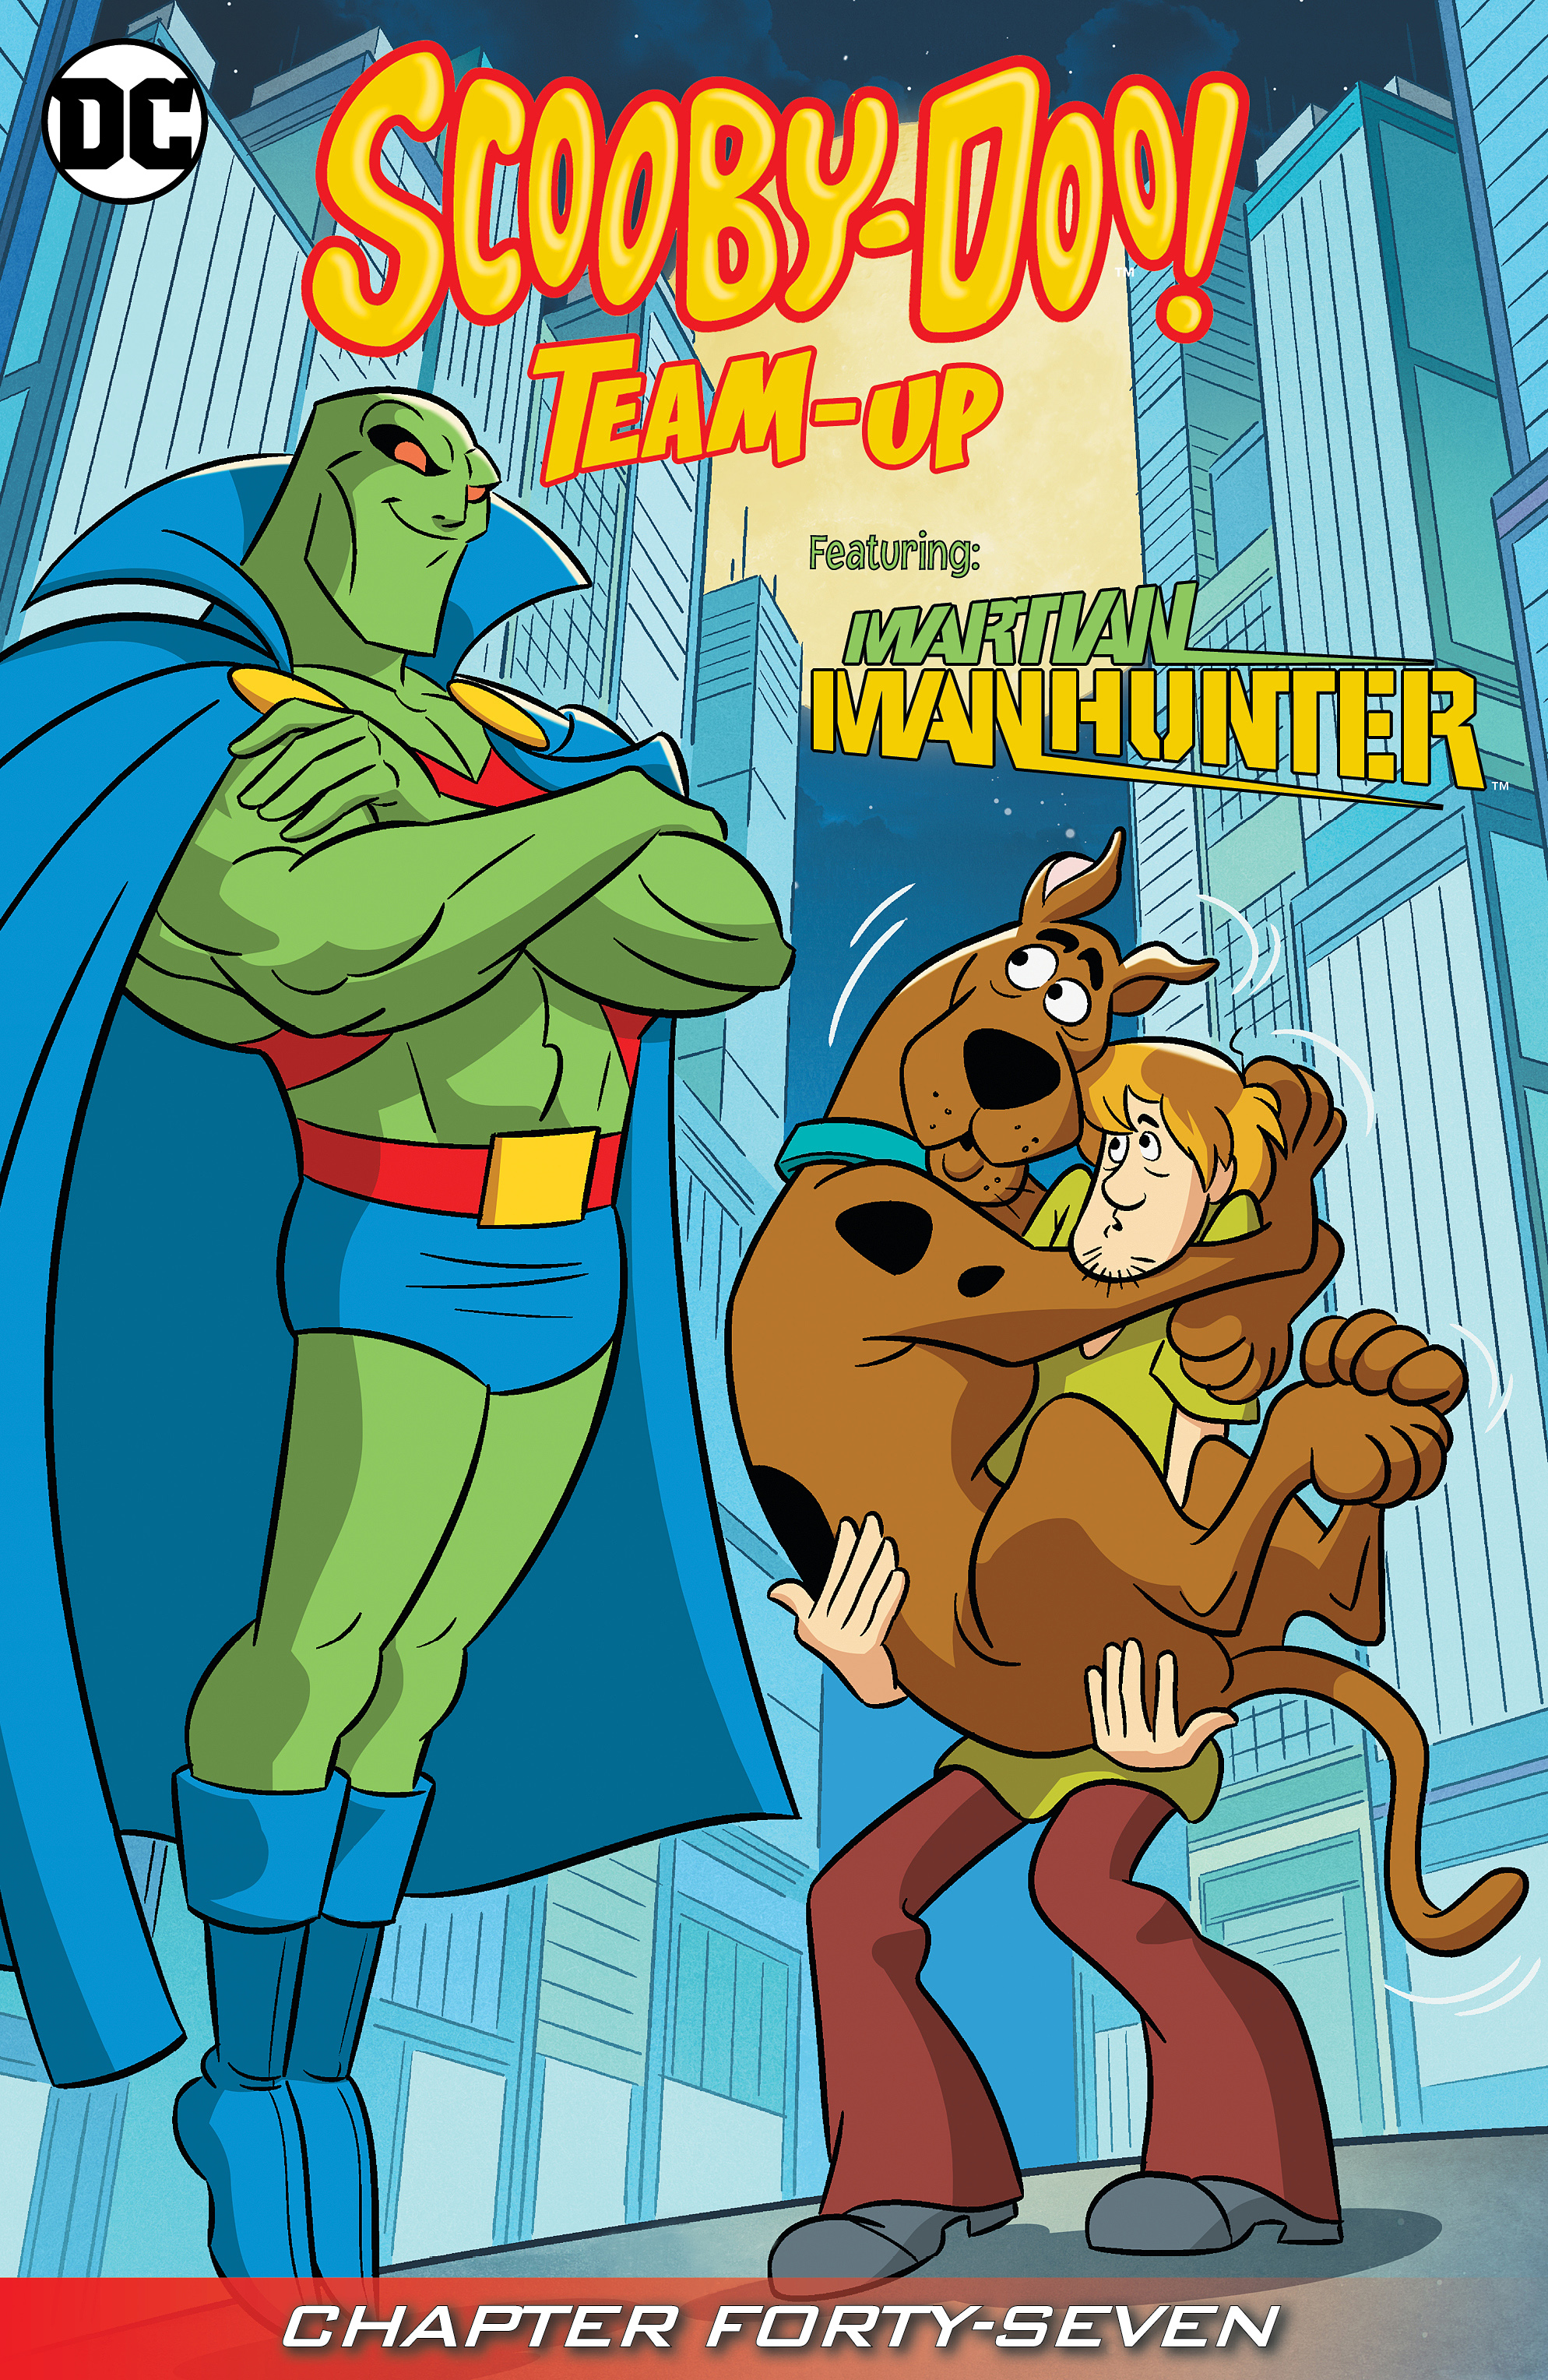 Read online Scooby-Doo! Team-Up comic -  Issue #47 - 2